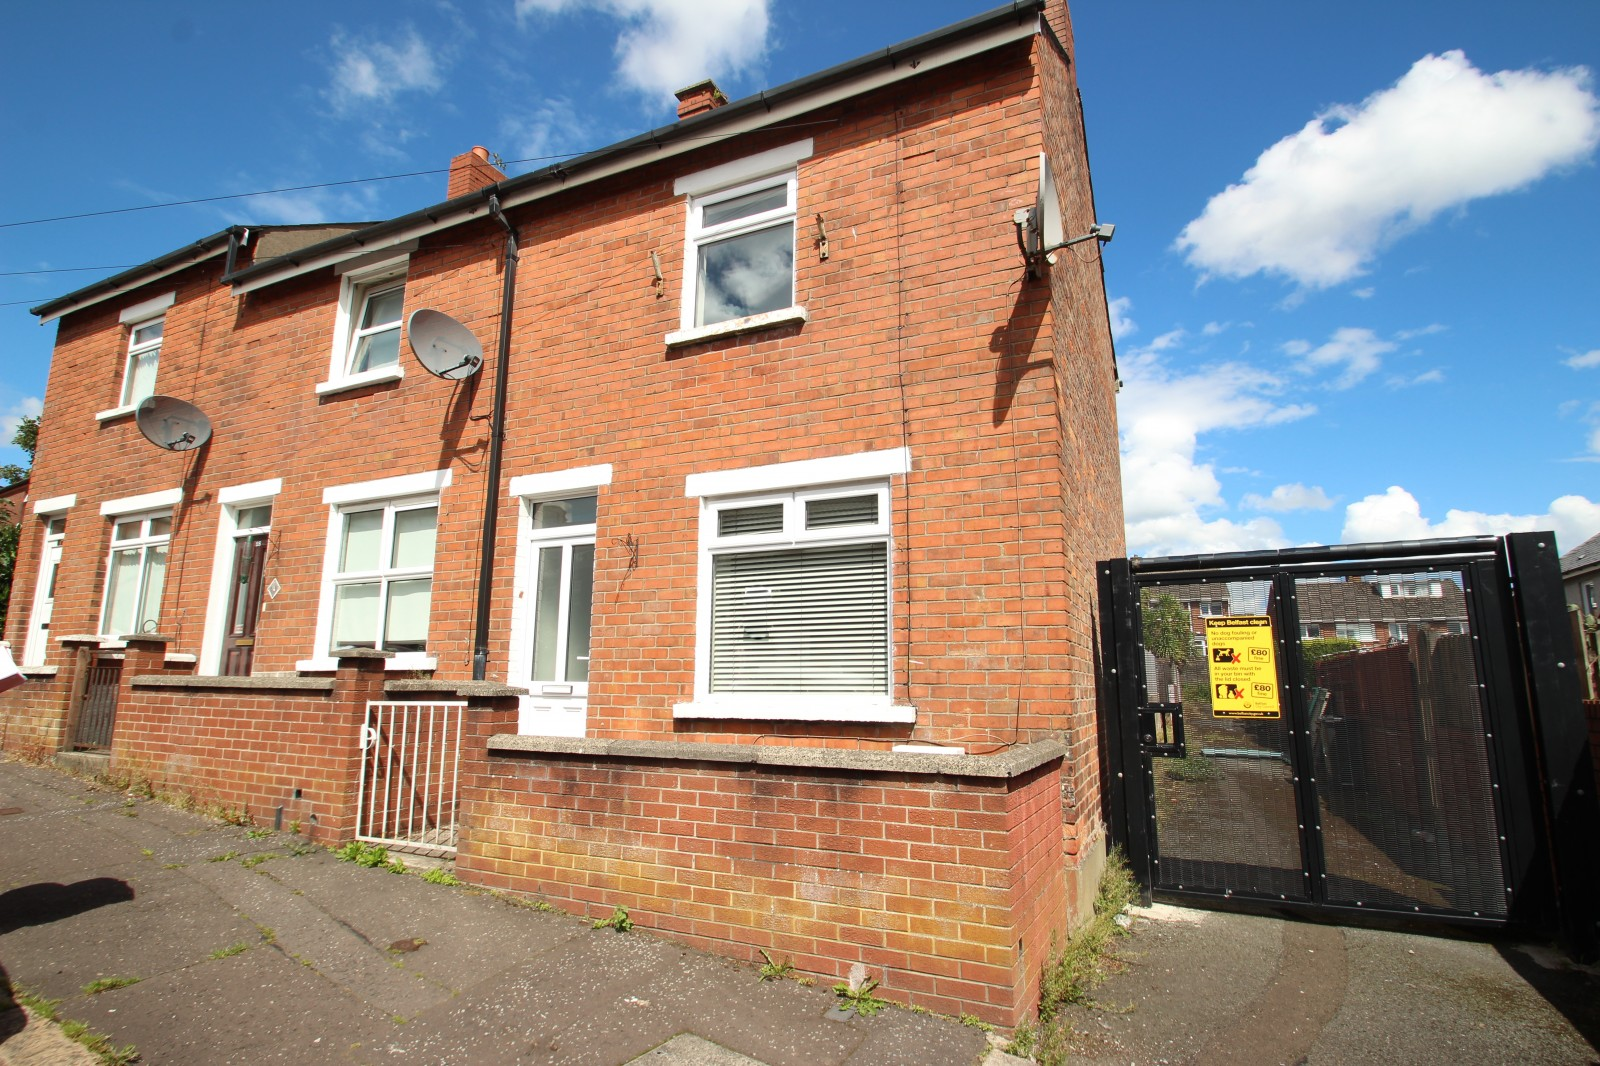 30 Leroy Street, Crumlin Road, North Belfast, BT14 8AU